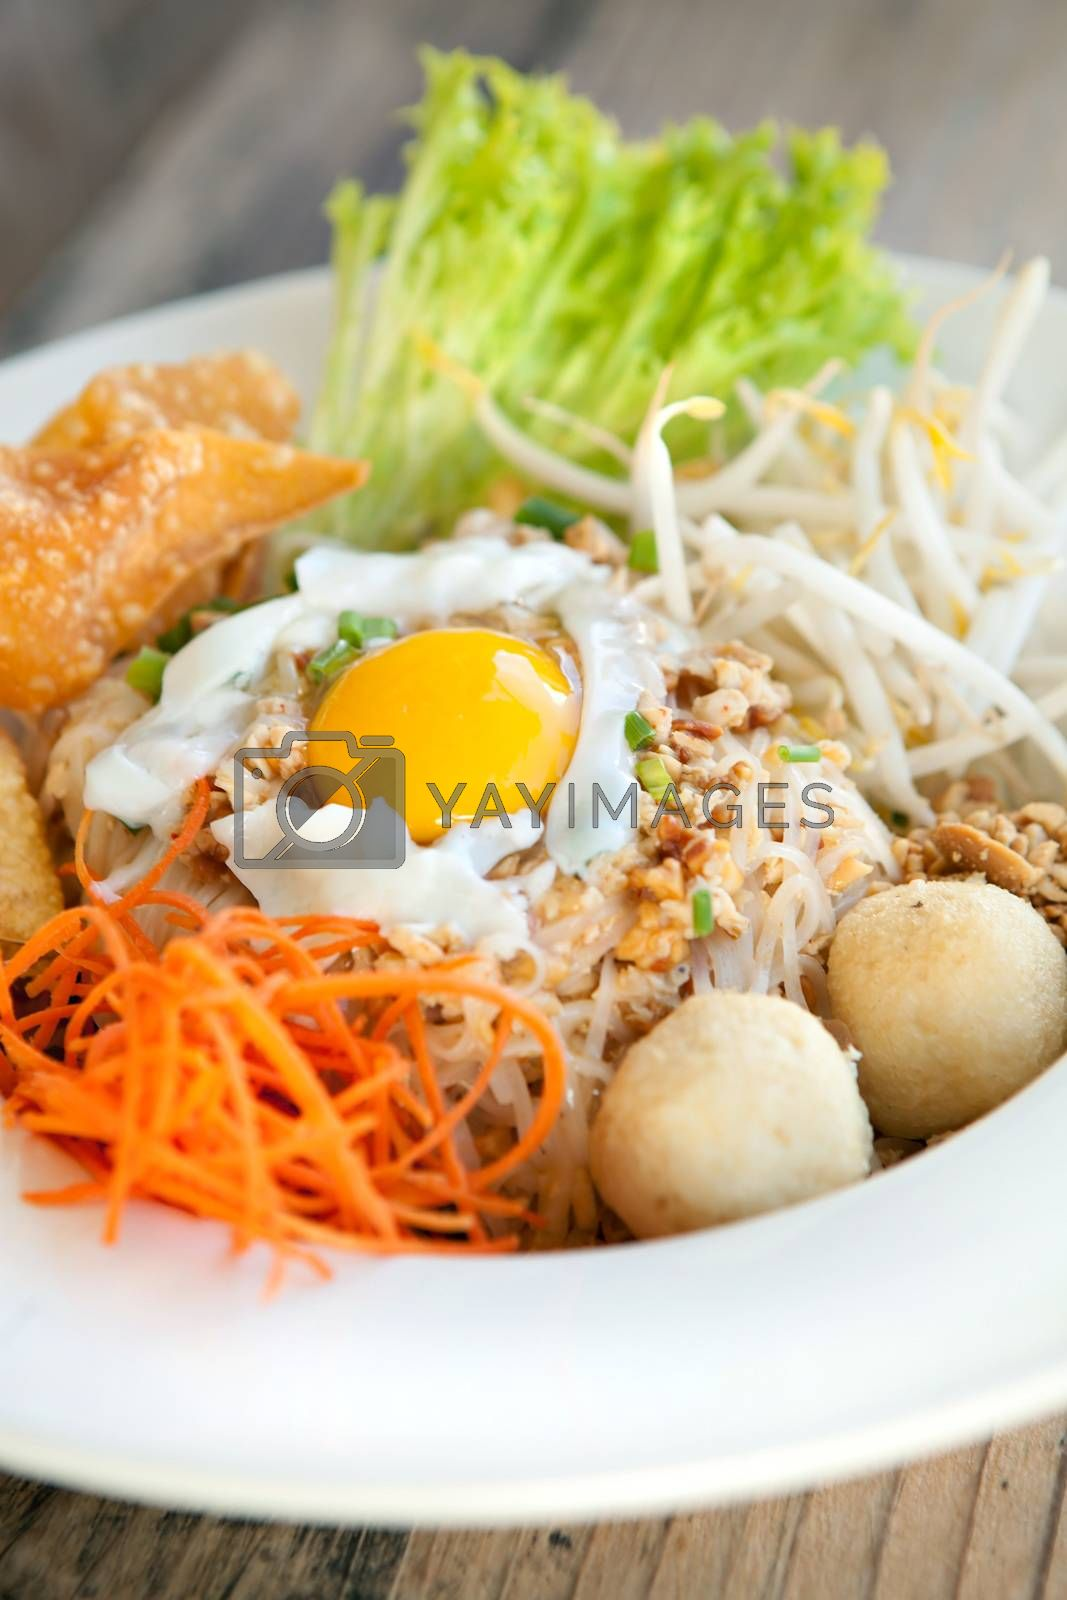 Gai pad bai gaprow style Thai dish with fried egg and rice noodles.